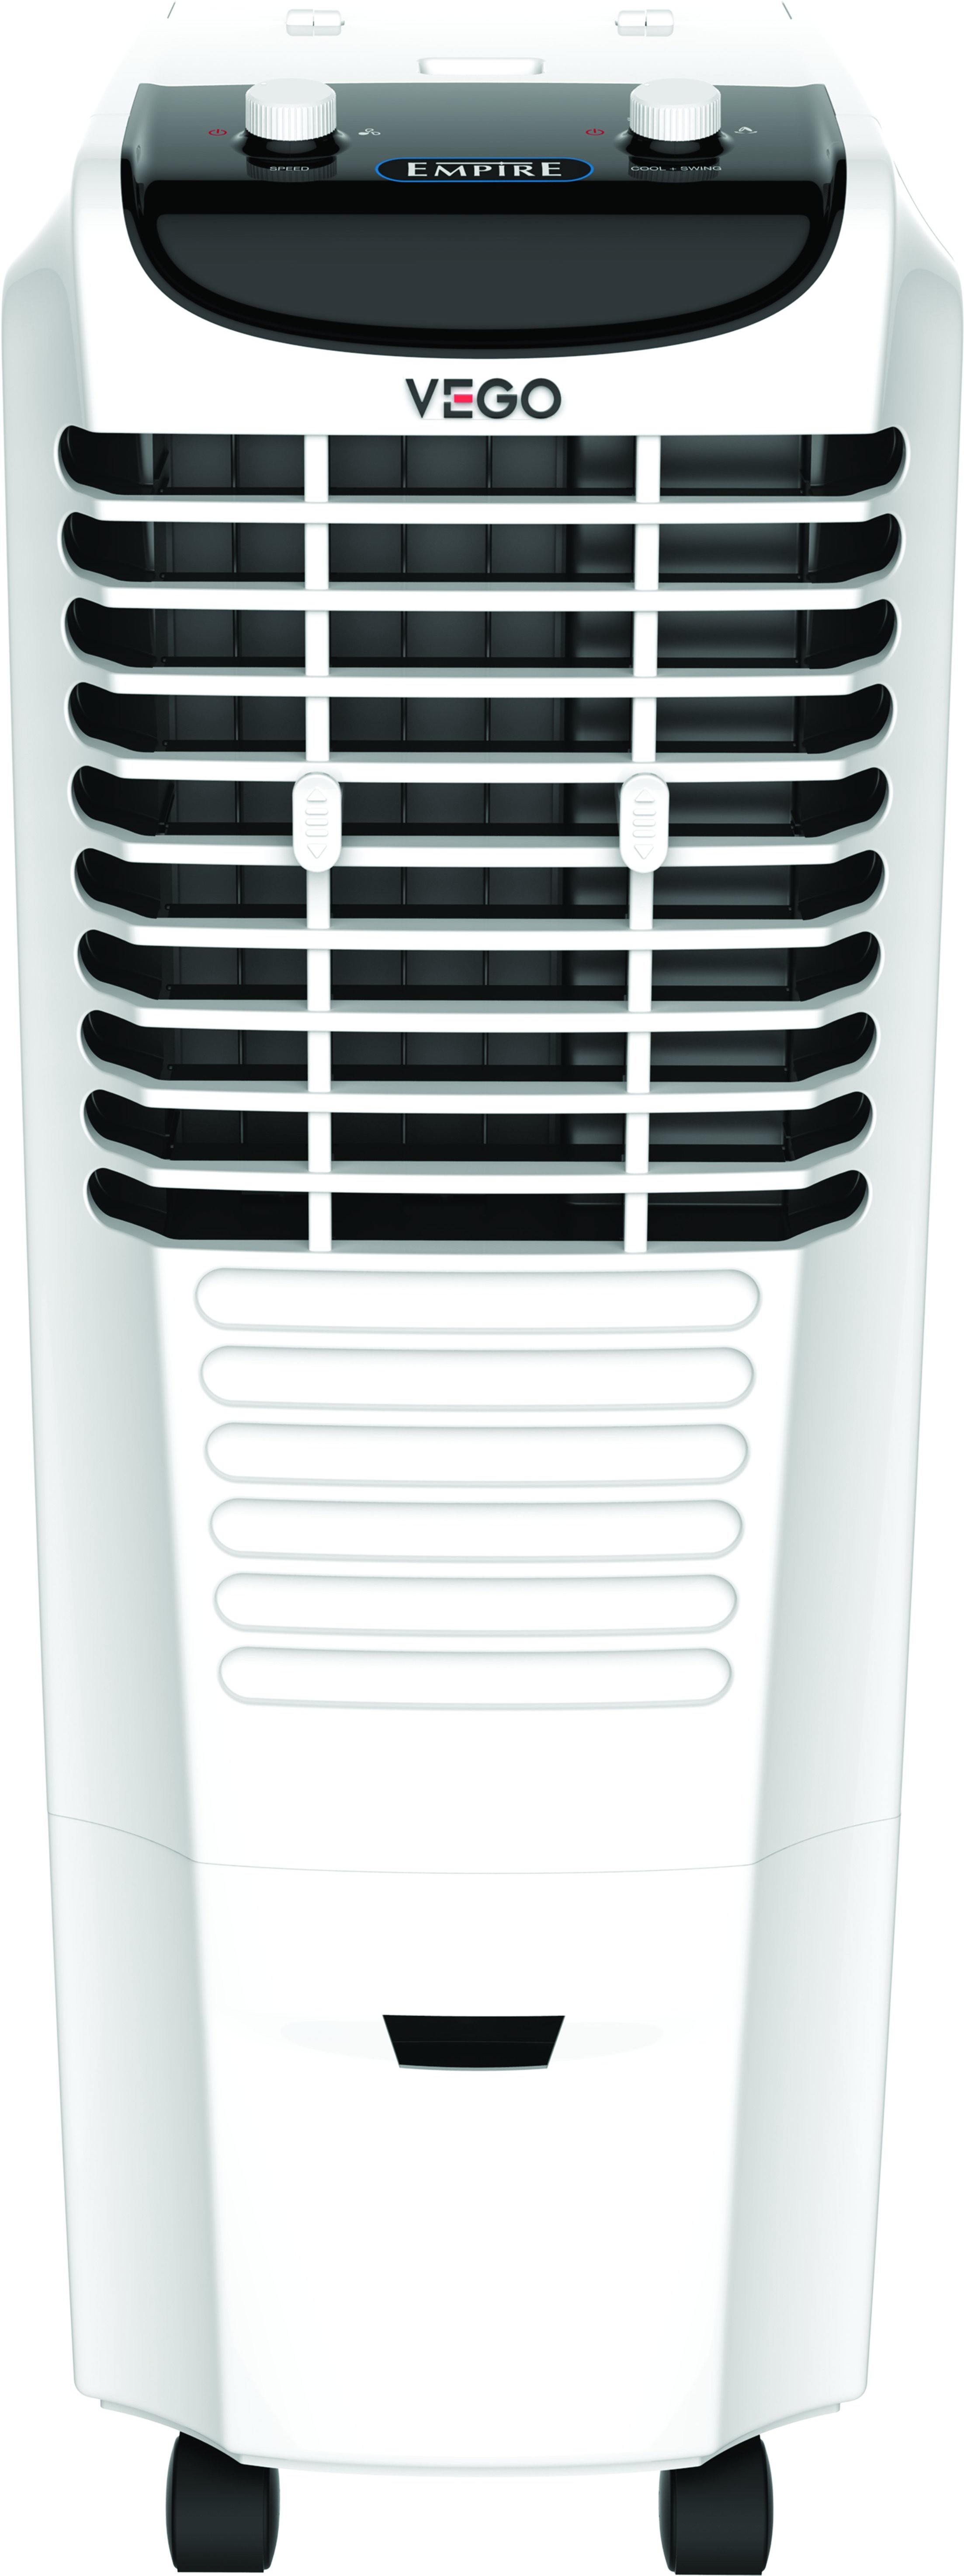 Vego Empire 25 Tower Air Cooler Image